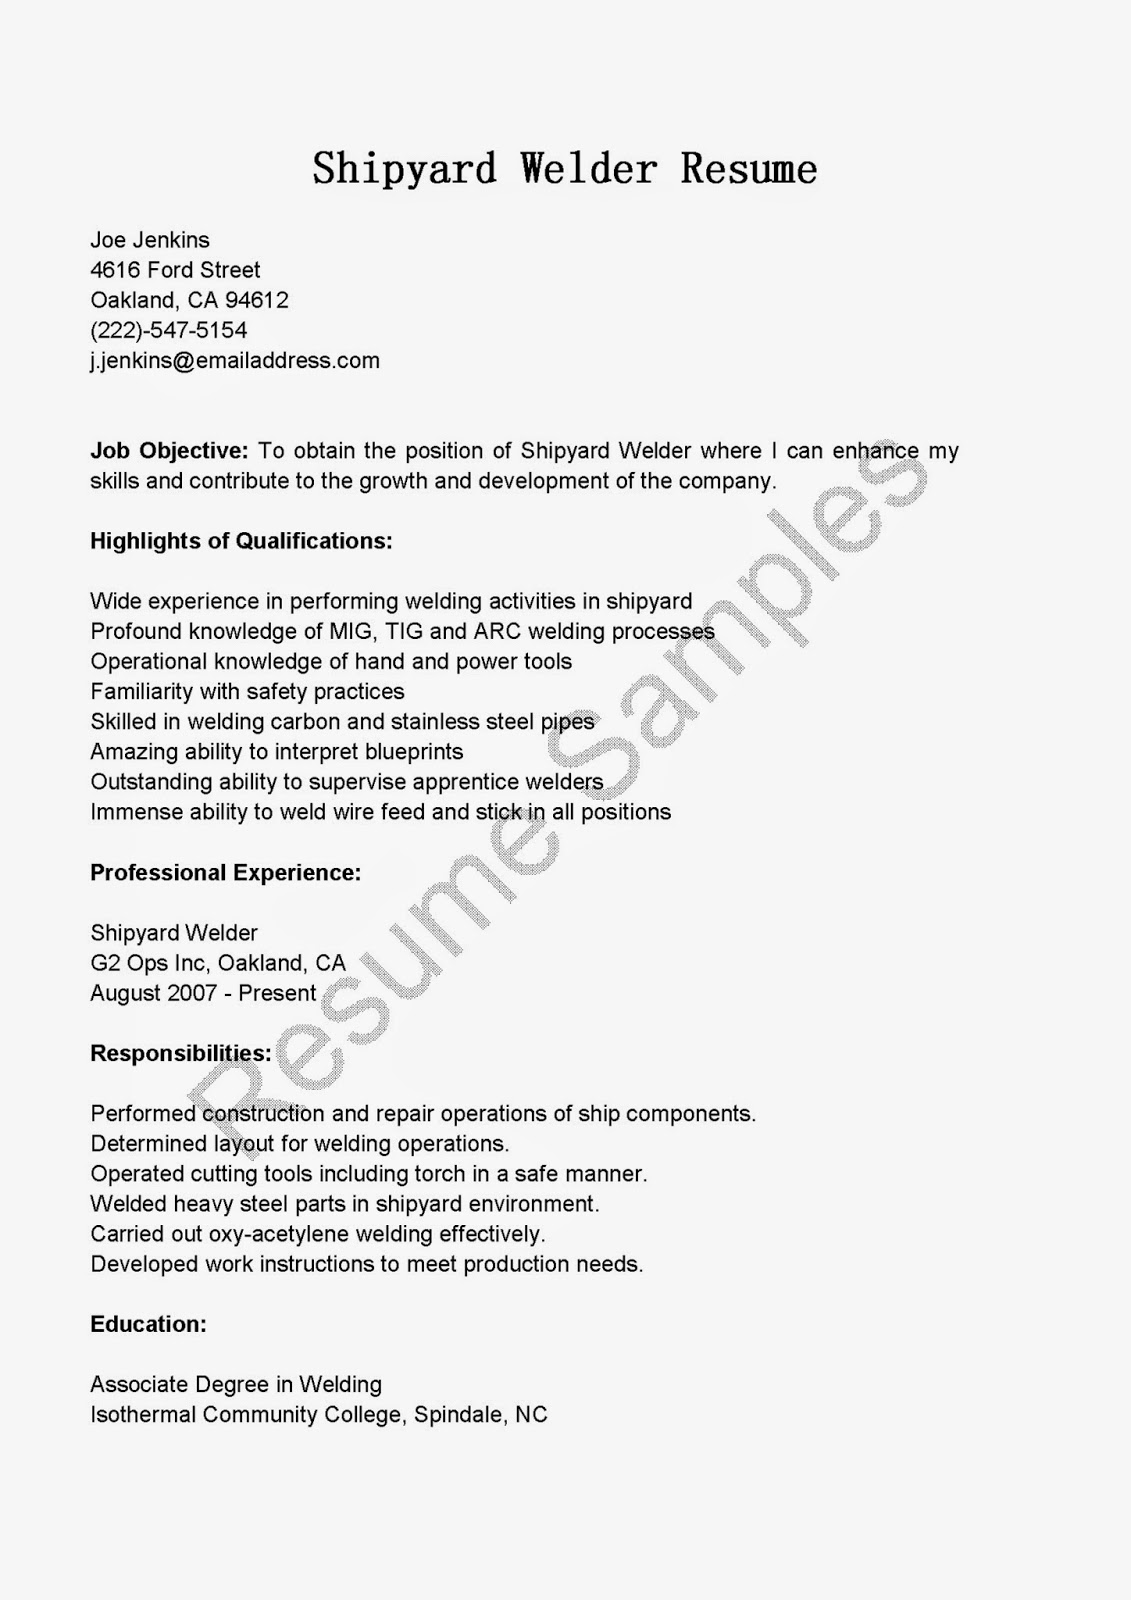 resume samples  shipyard welder resume sample